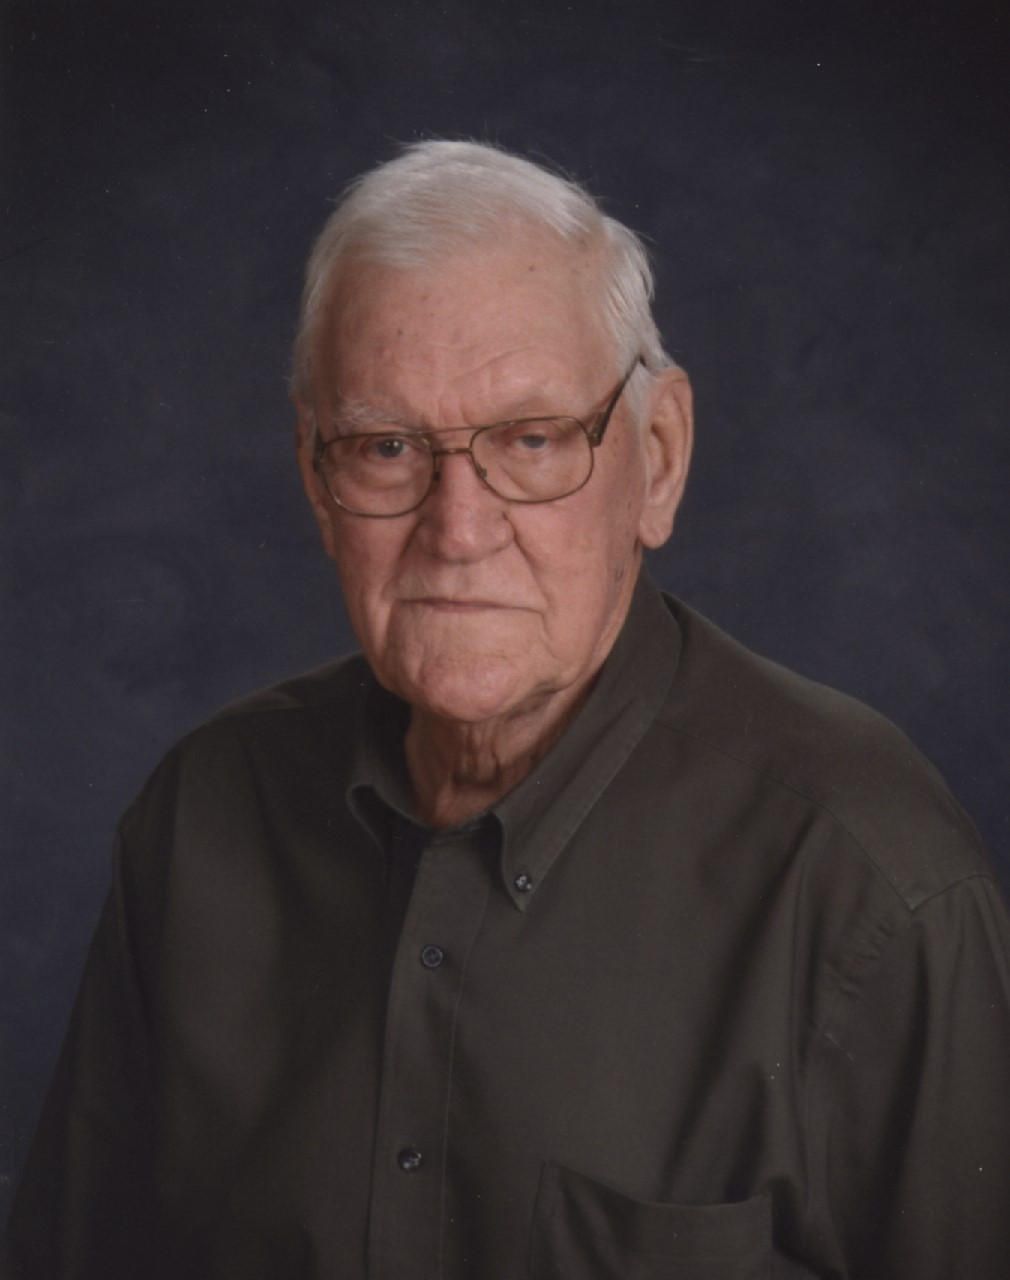 Robert W. Duncan, 83, of Huntingburg